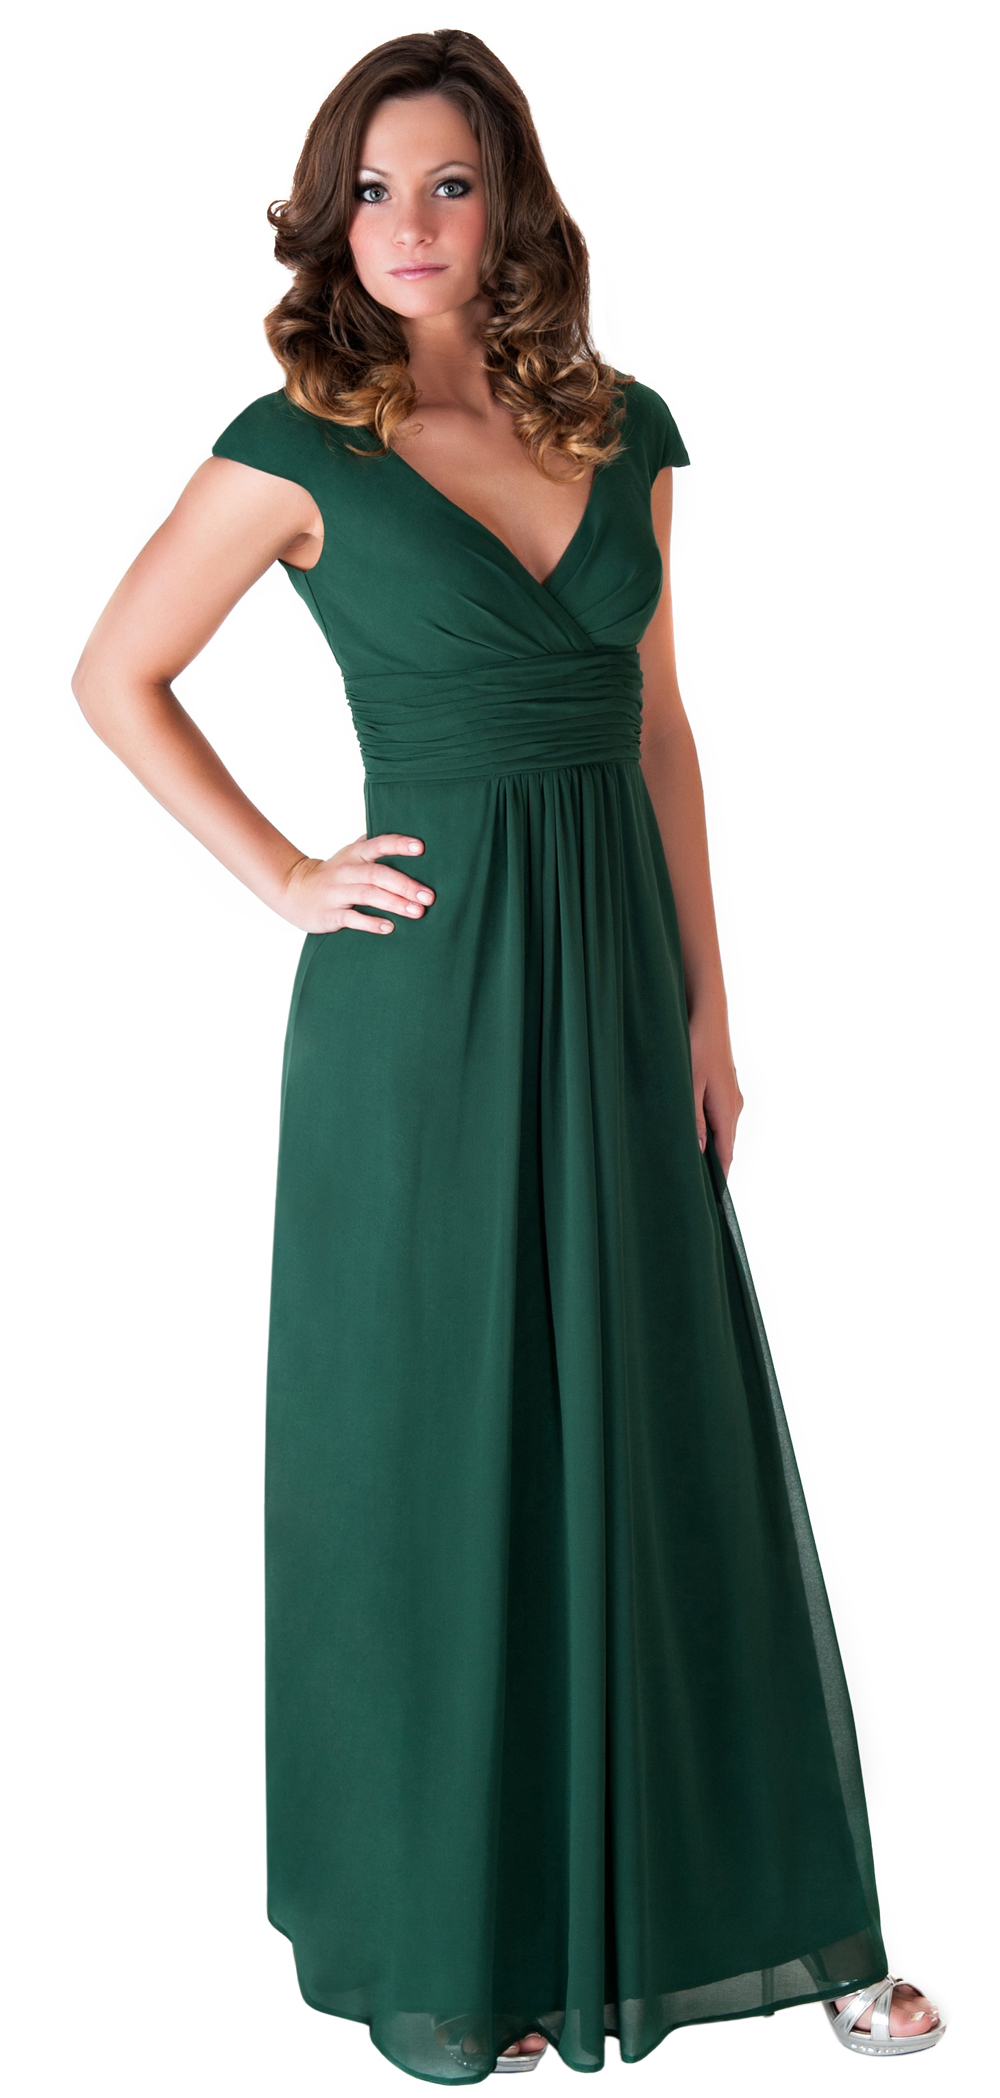 Formal Dress Elegant Women Long Evening Gown Bridesmaid ...